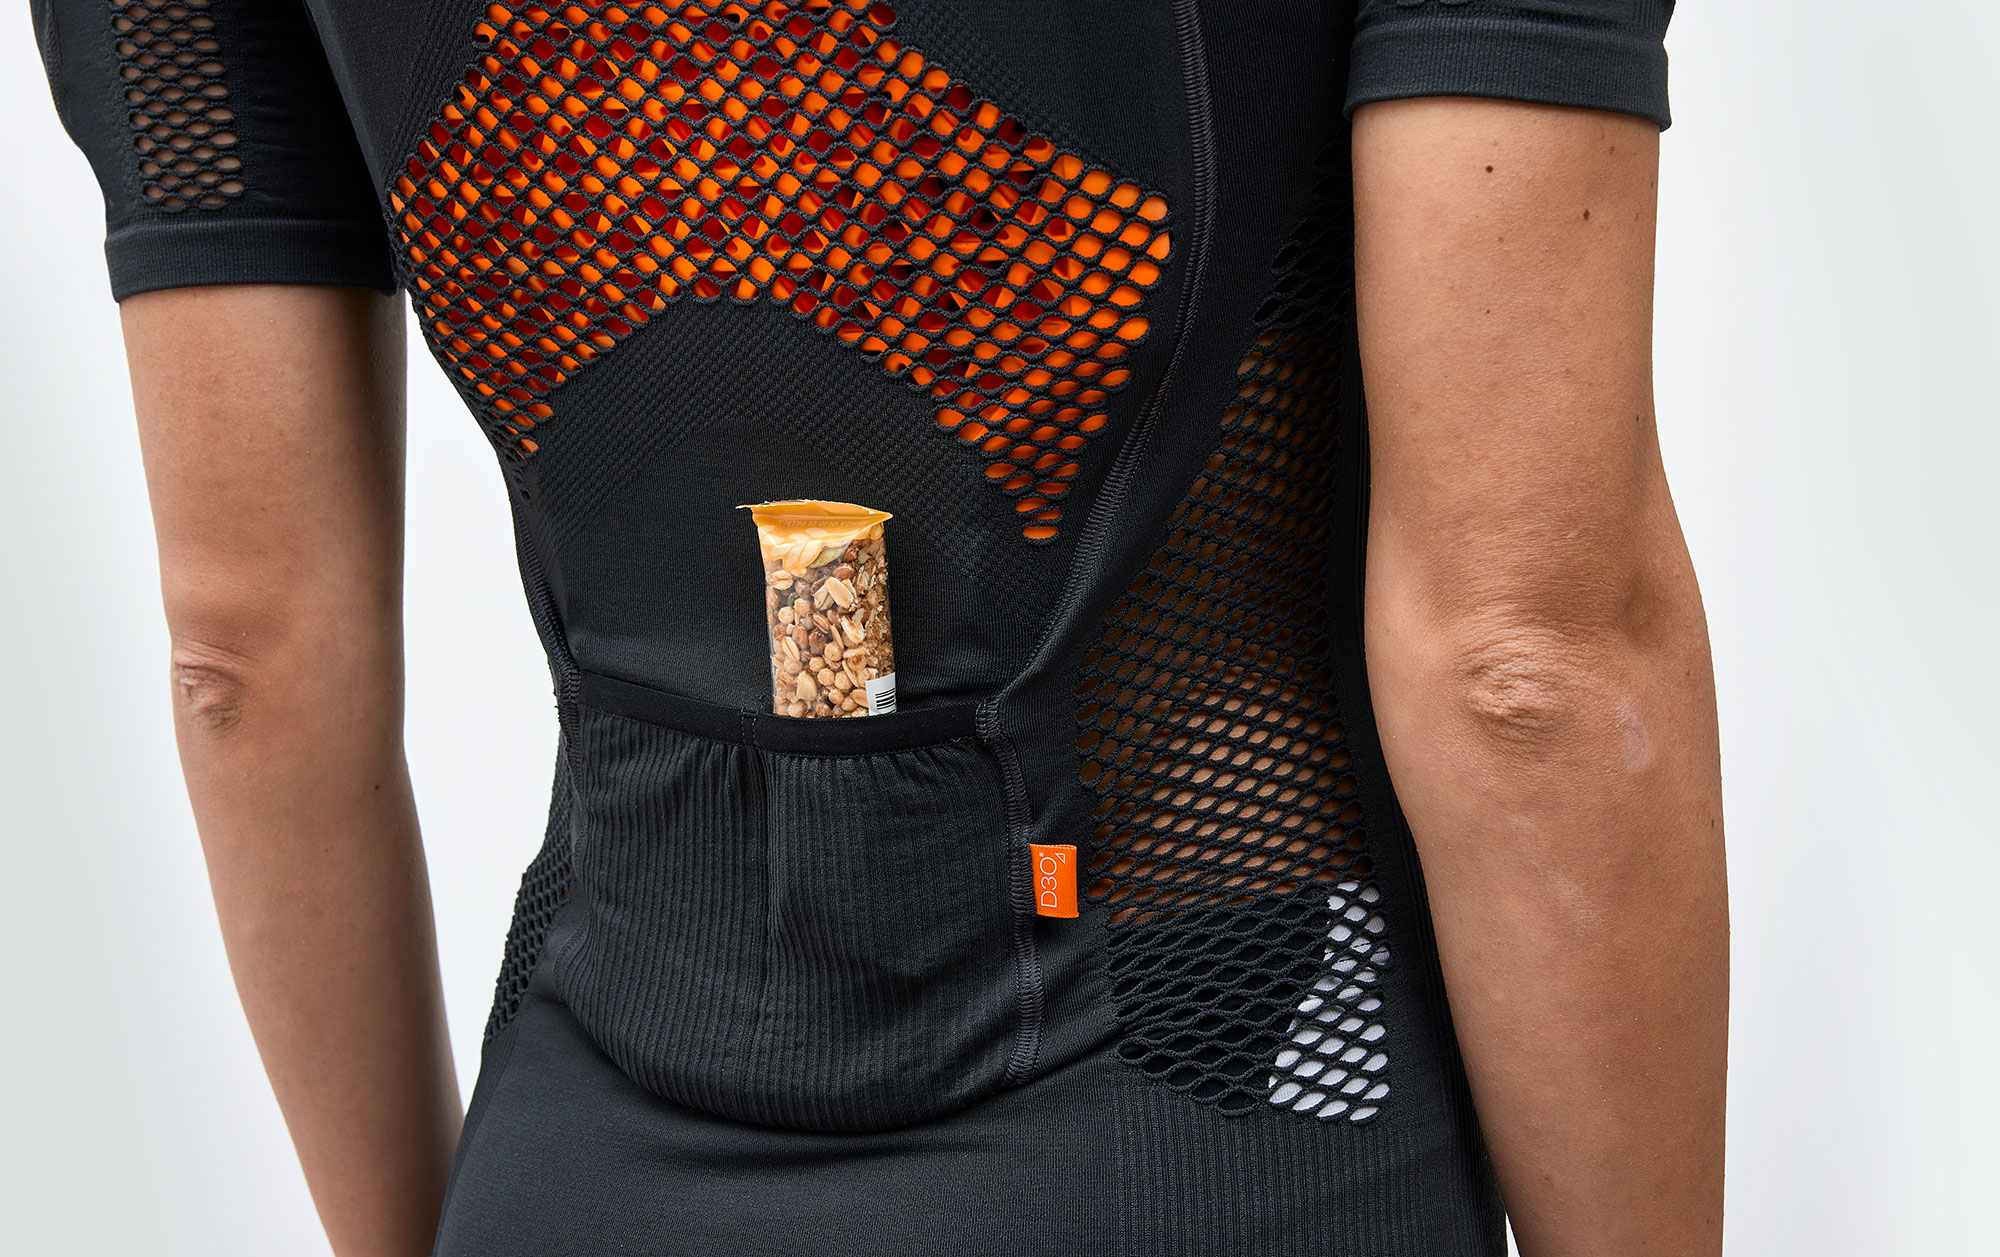 Bluegrass Seamless B&S D3O Back Protector for MTB, Downhill, Enduro, Trail and E-MTB